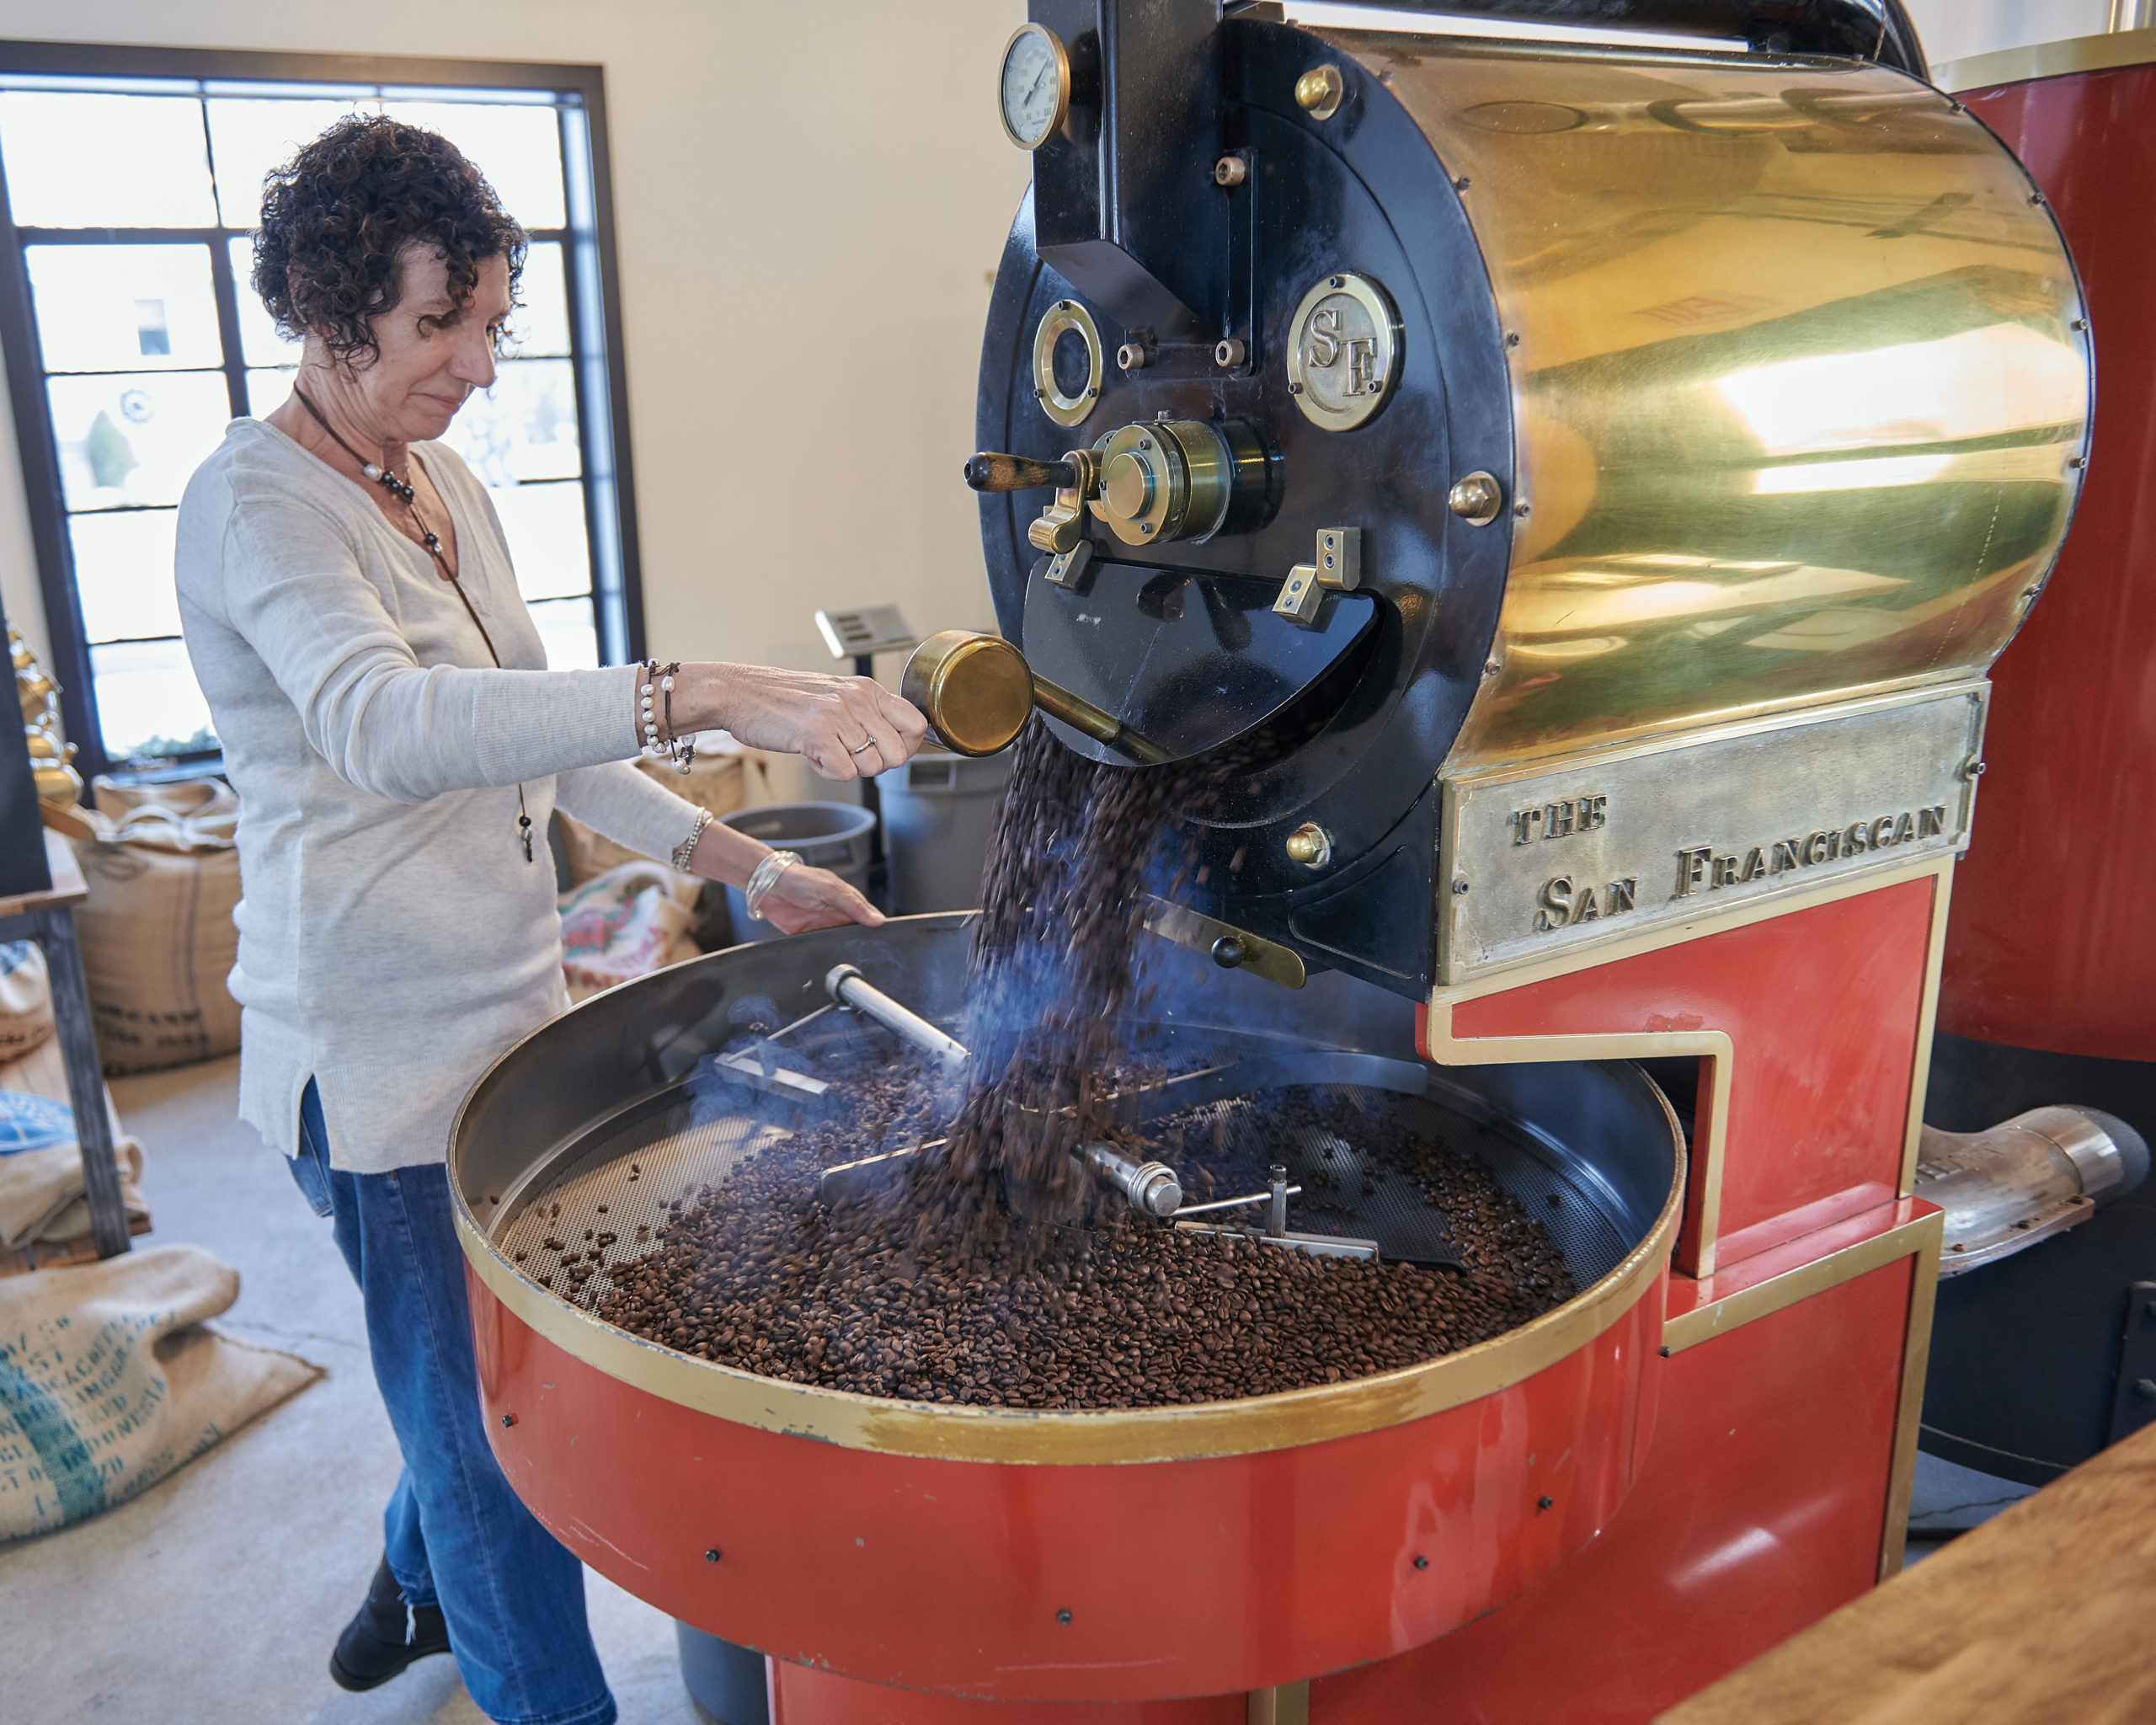 Kate stirring roasted coffee beans in the roaster.